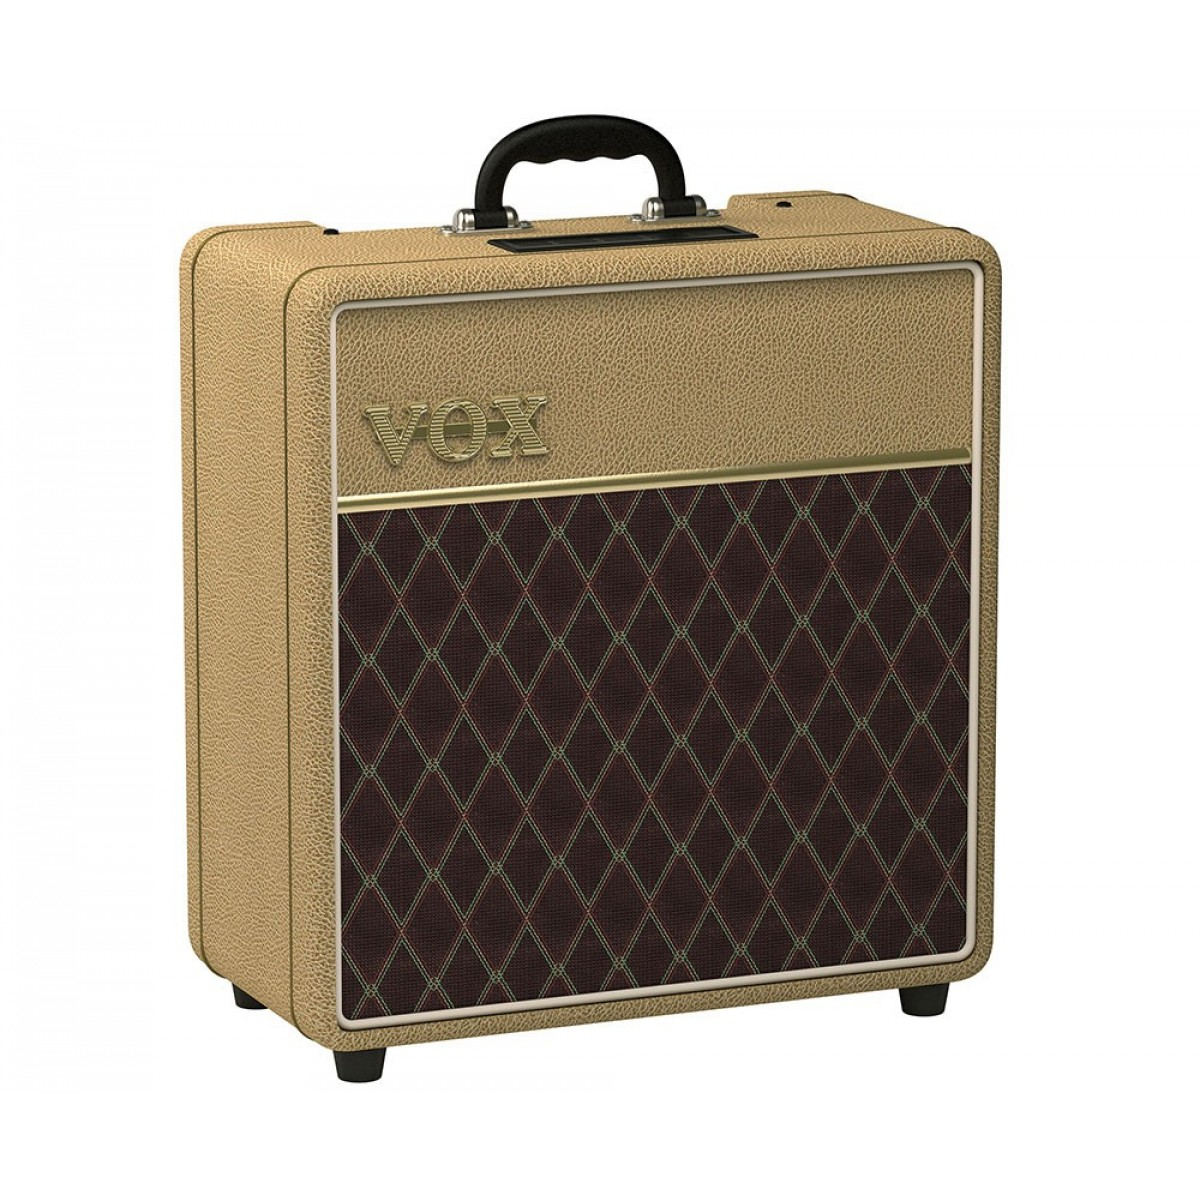 Vox Ac4c1 12 Tn Buy Guitar Combo Amp Best Price Treble Tone Control Gain Bass And Controls A Master Volume Allow Any Player To Easily Recreate This Historic Sound